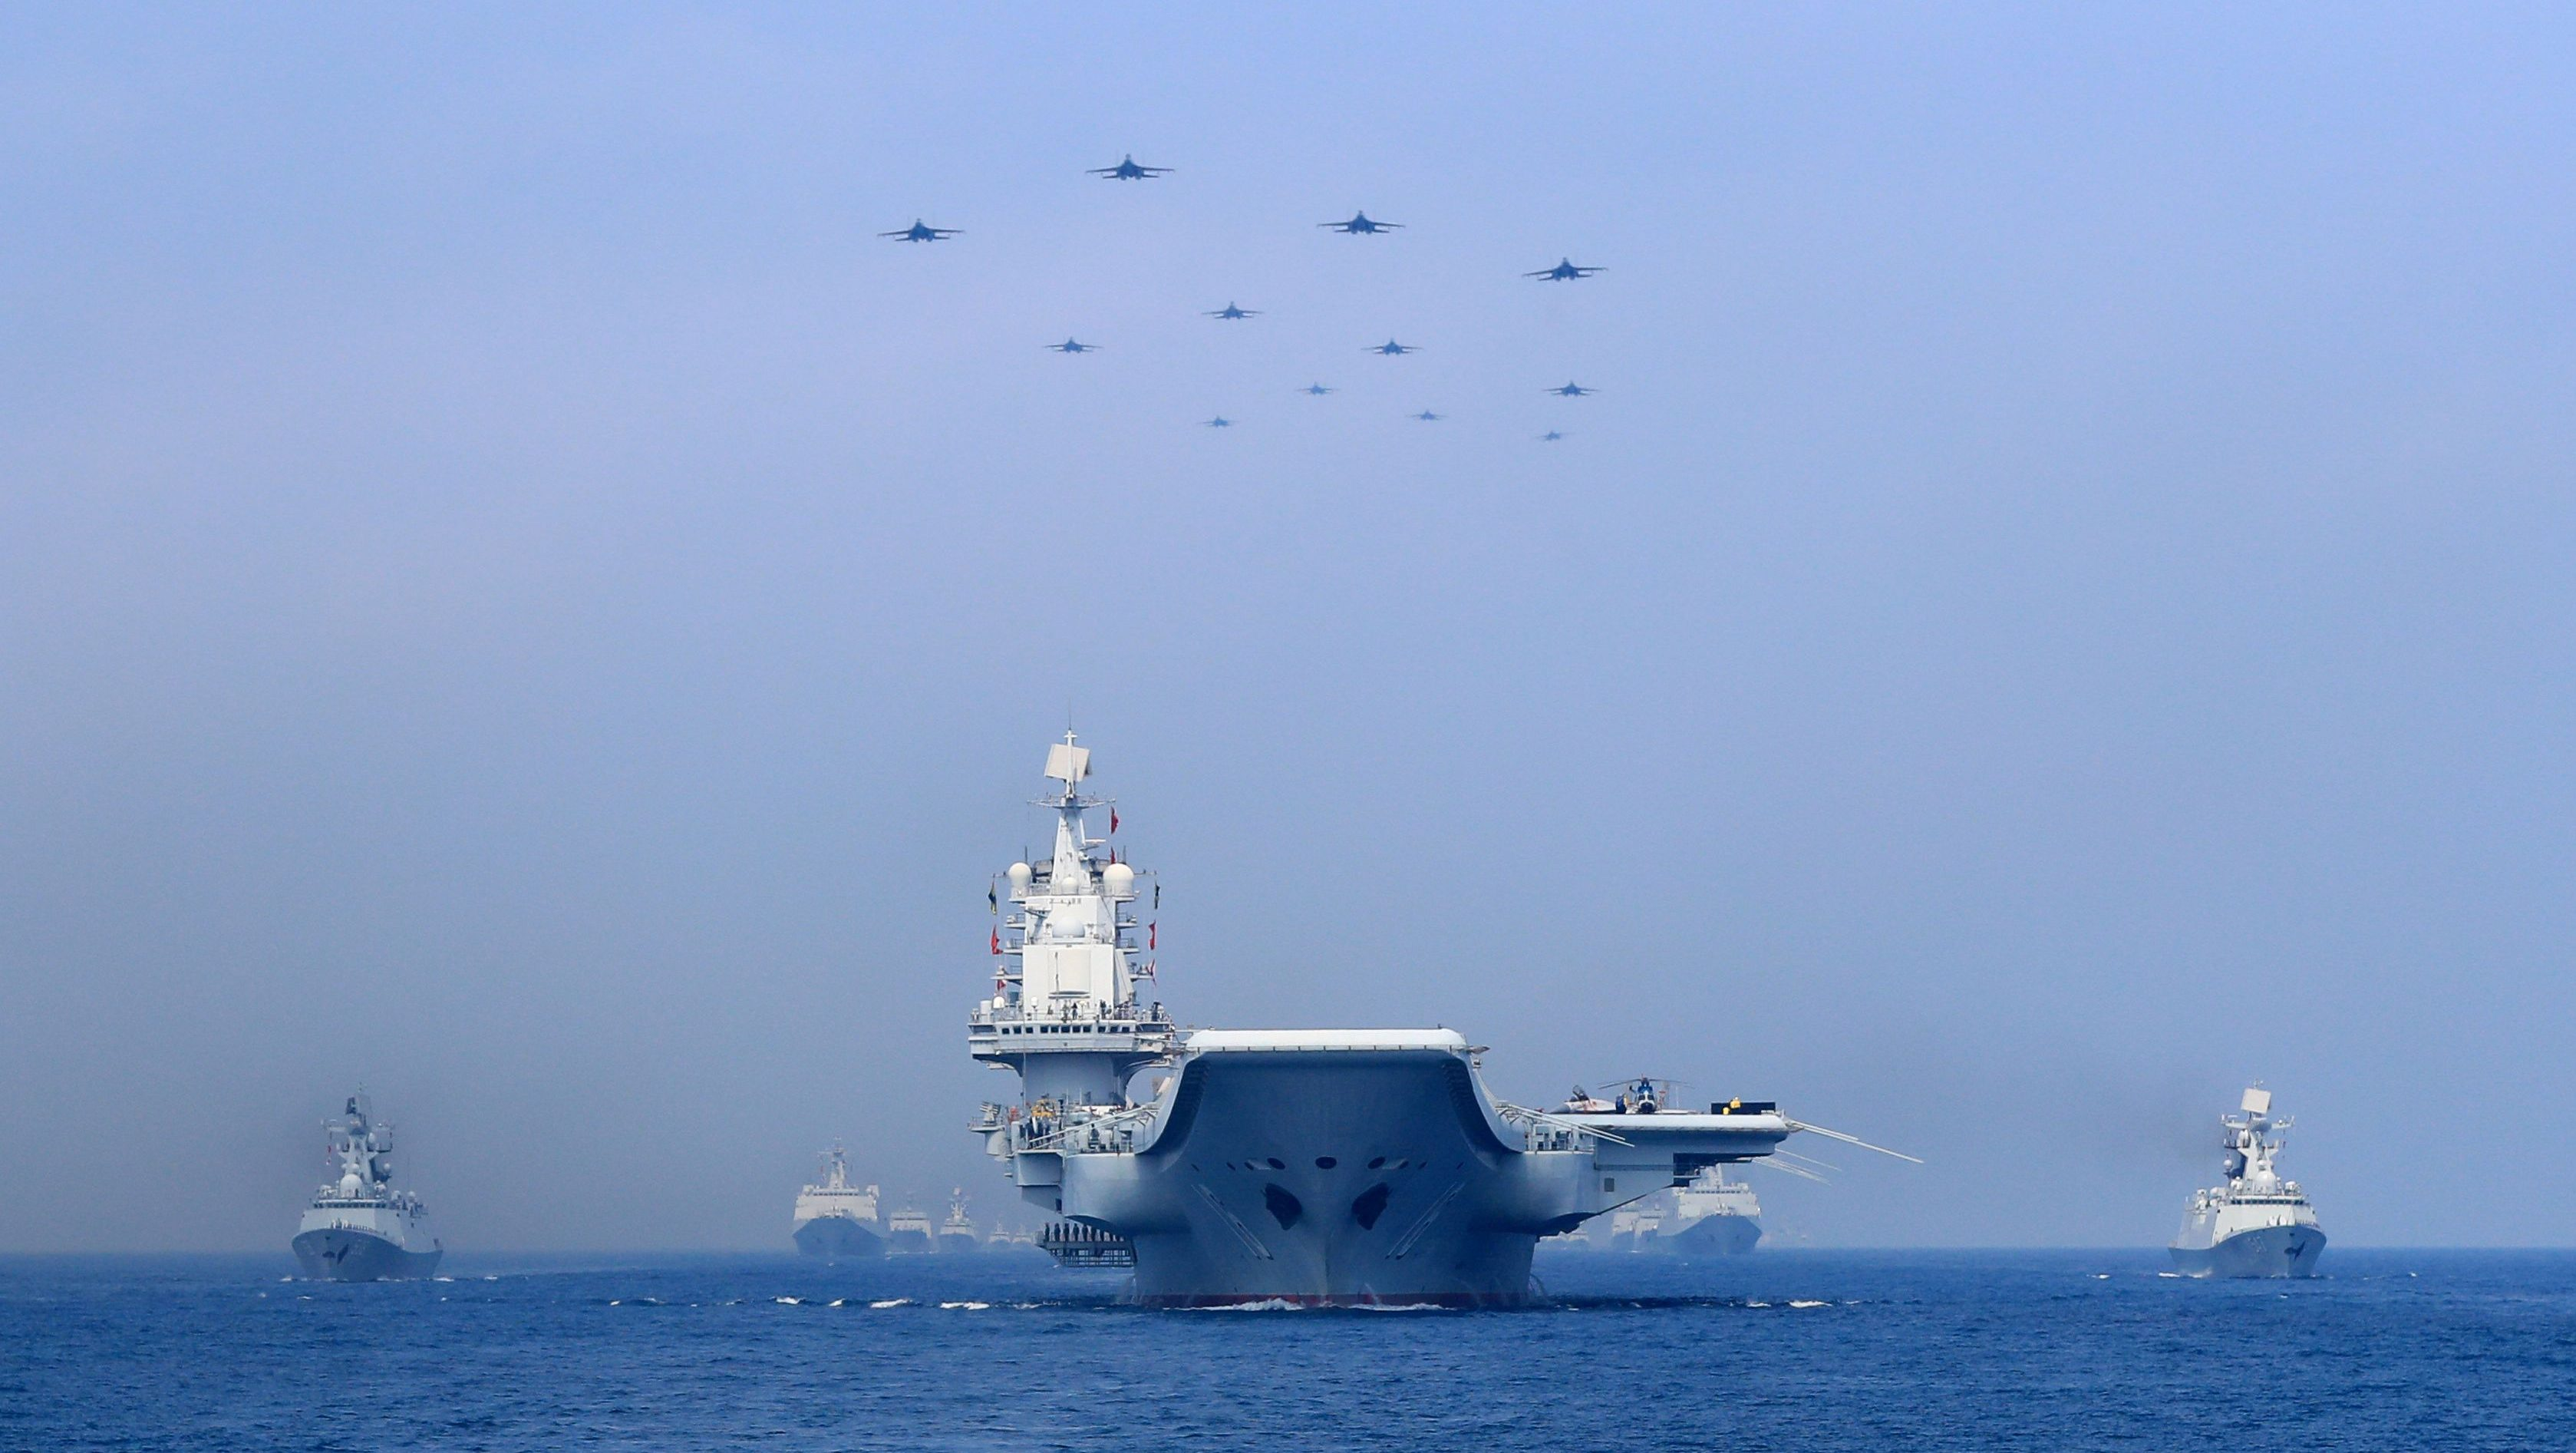 Warships and fighter jets of Chinese People's Liberation Army (PLA) Navy take part in a military display in the South China Sea April 12, 2018.